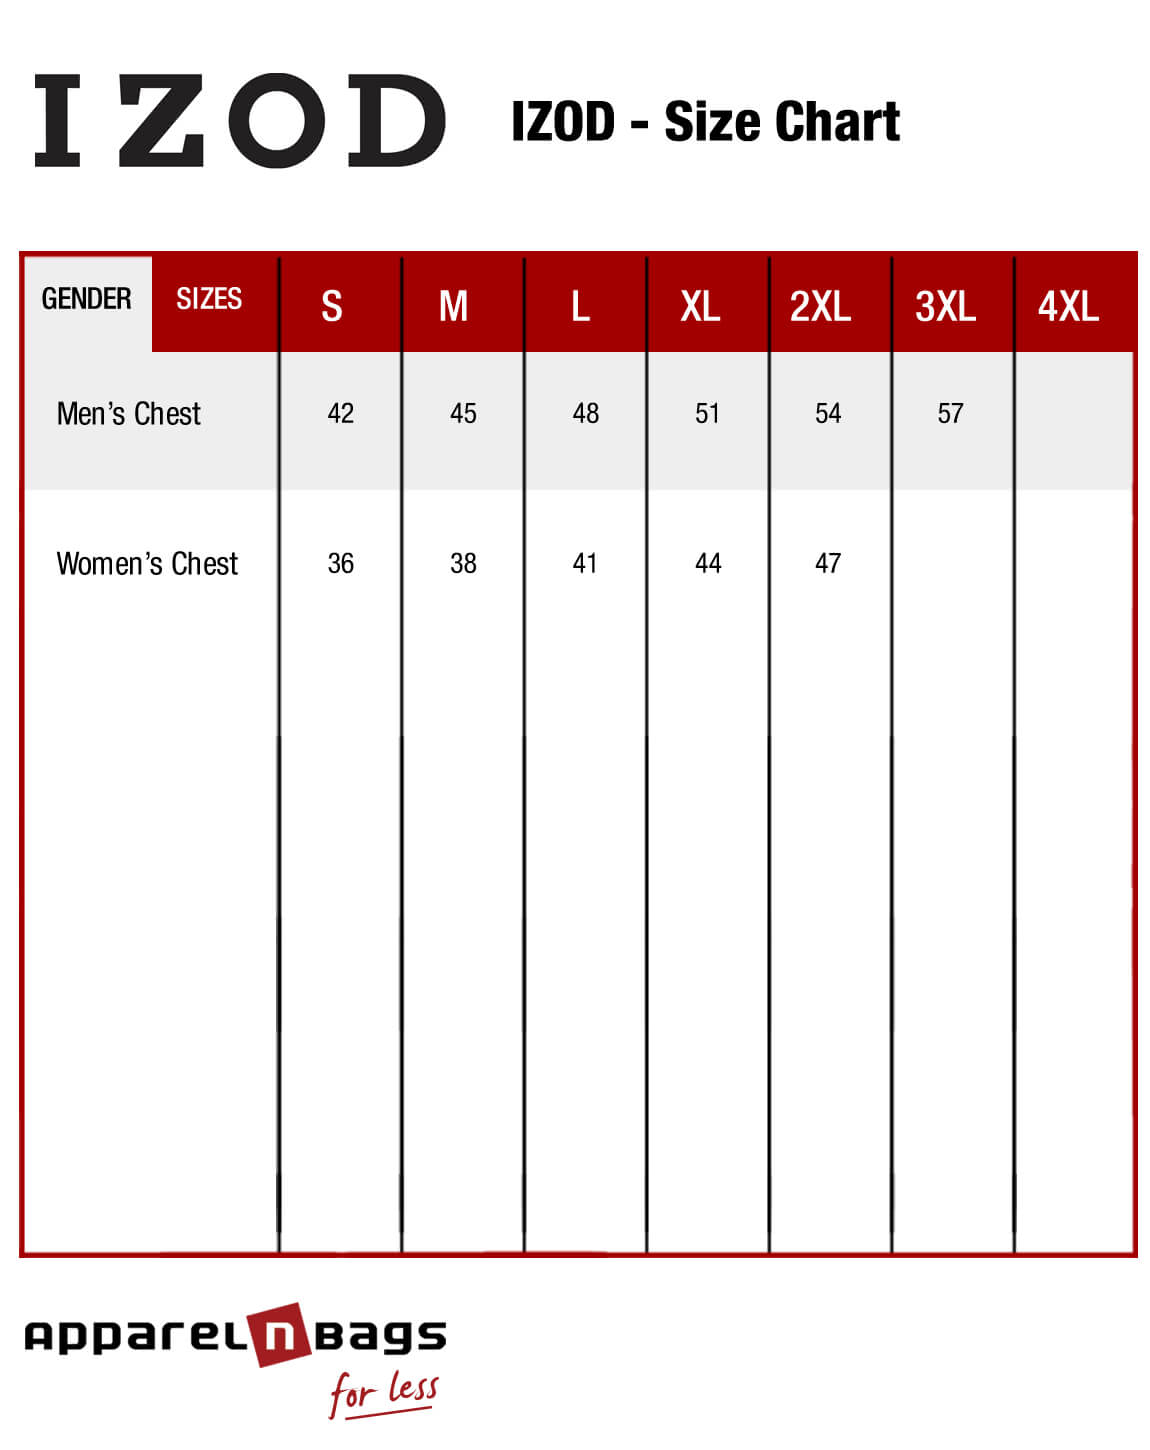 Izod fit guide and clothing size chart at apparelnbags com